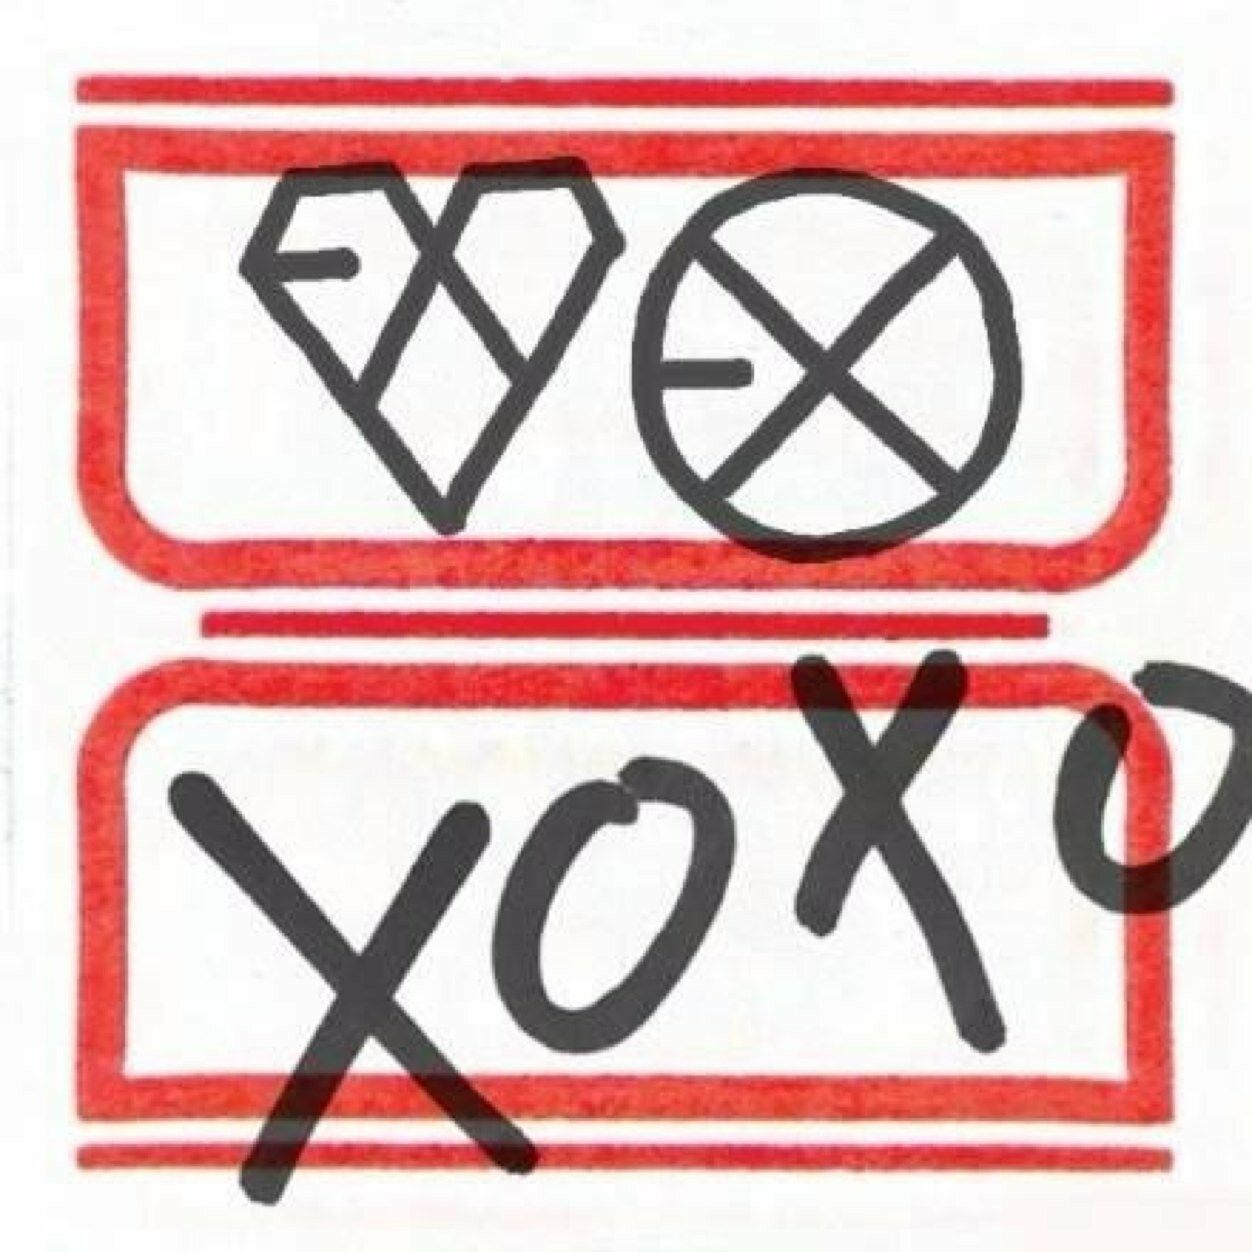 Exo xoxo album image by TYTrack 💅👑 on EXO Albums | Xoxo album ...